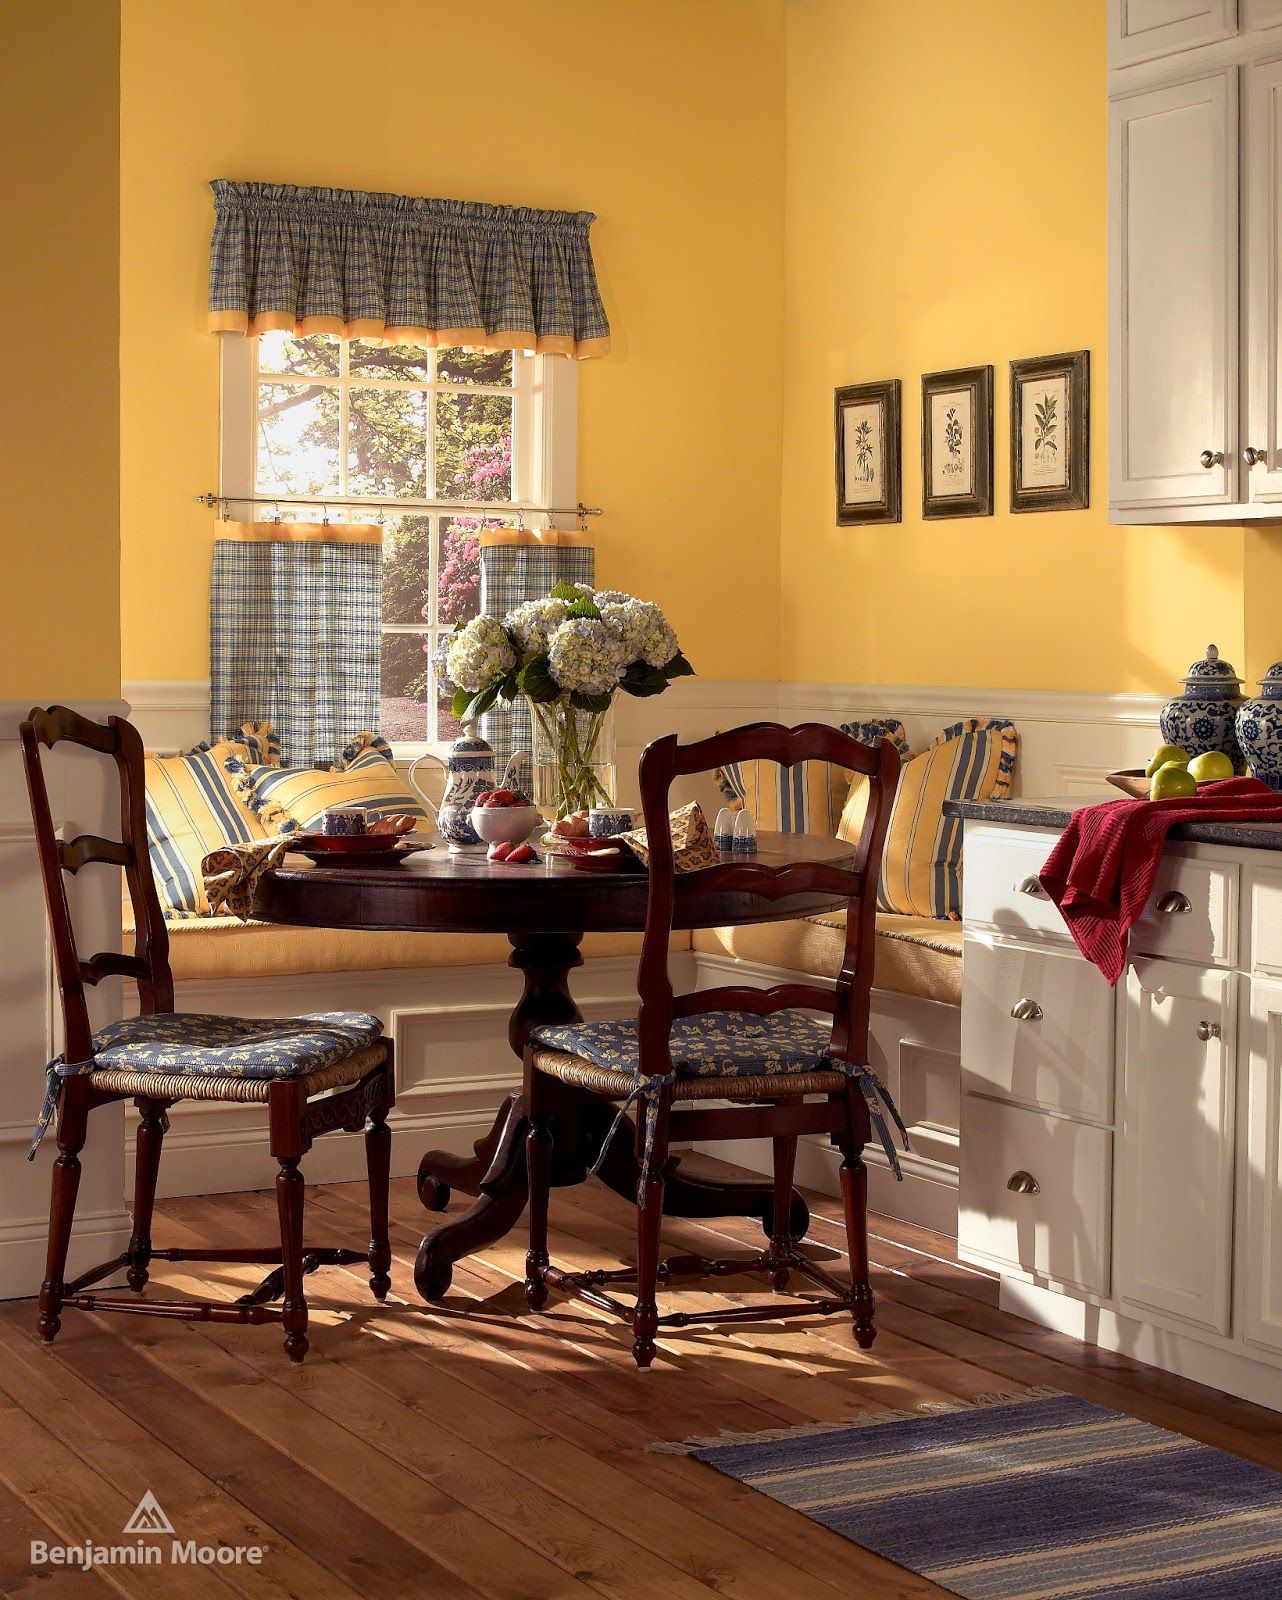 Cheerful Summer Interiors 50 Green And Yellow Kitchen: 2155-50 Suntan Yellow By Benjamin Moore. Factory Paint